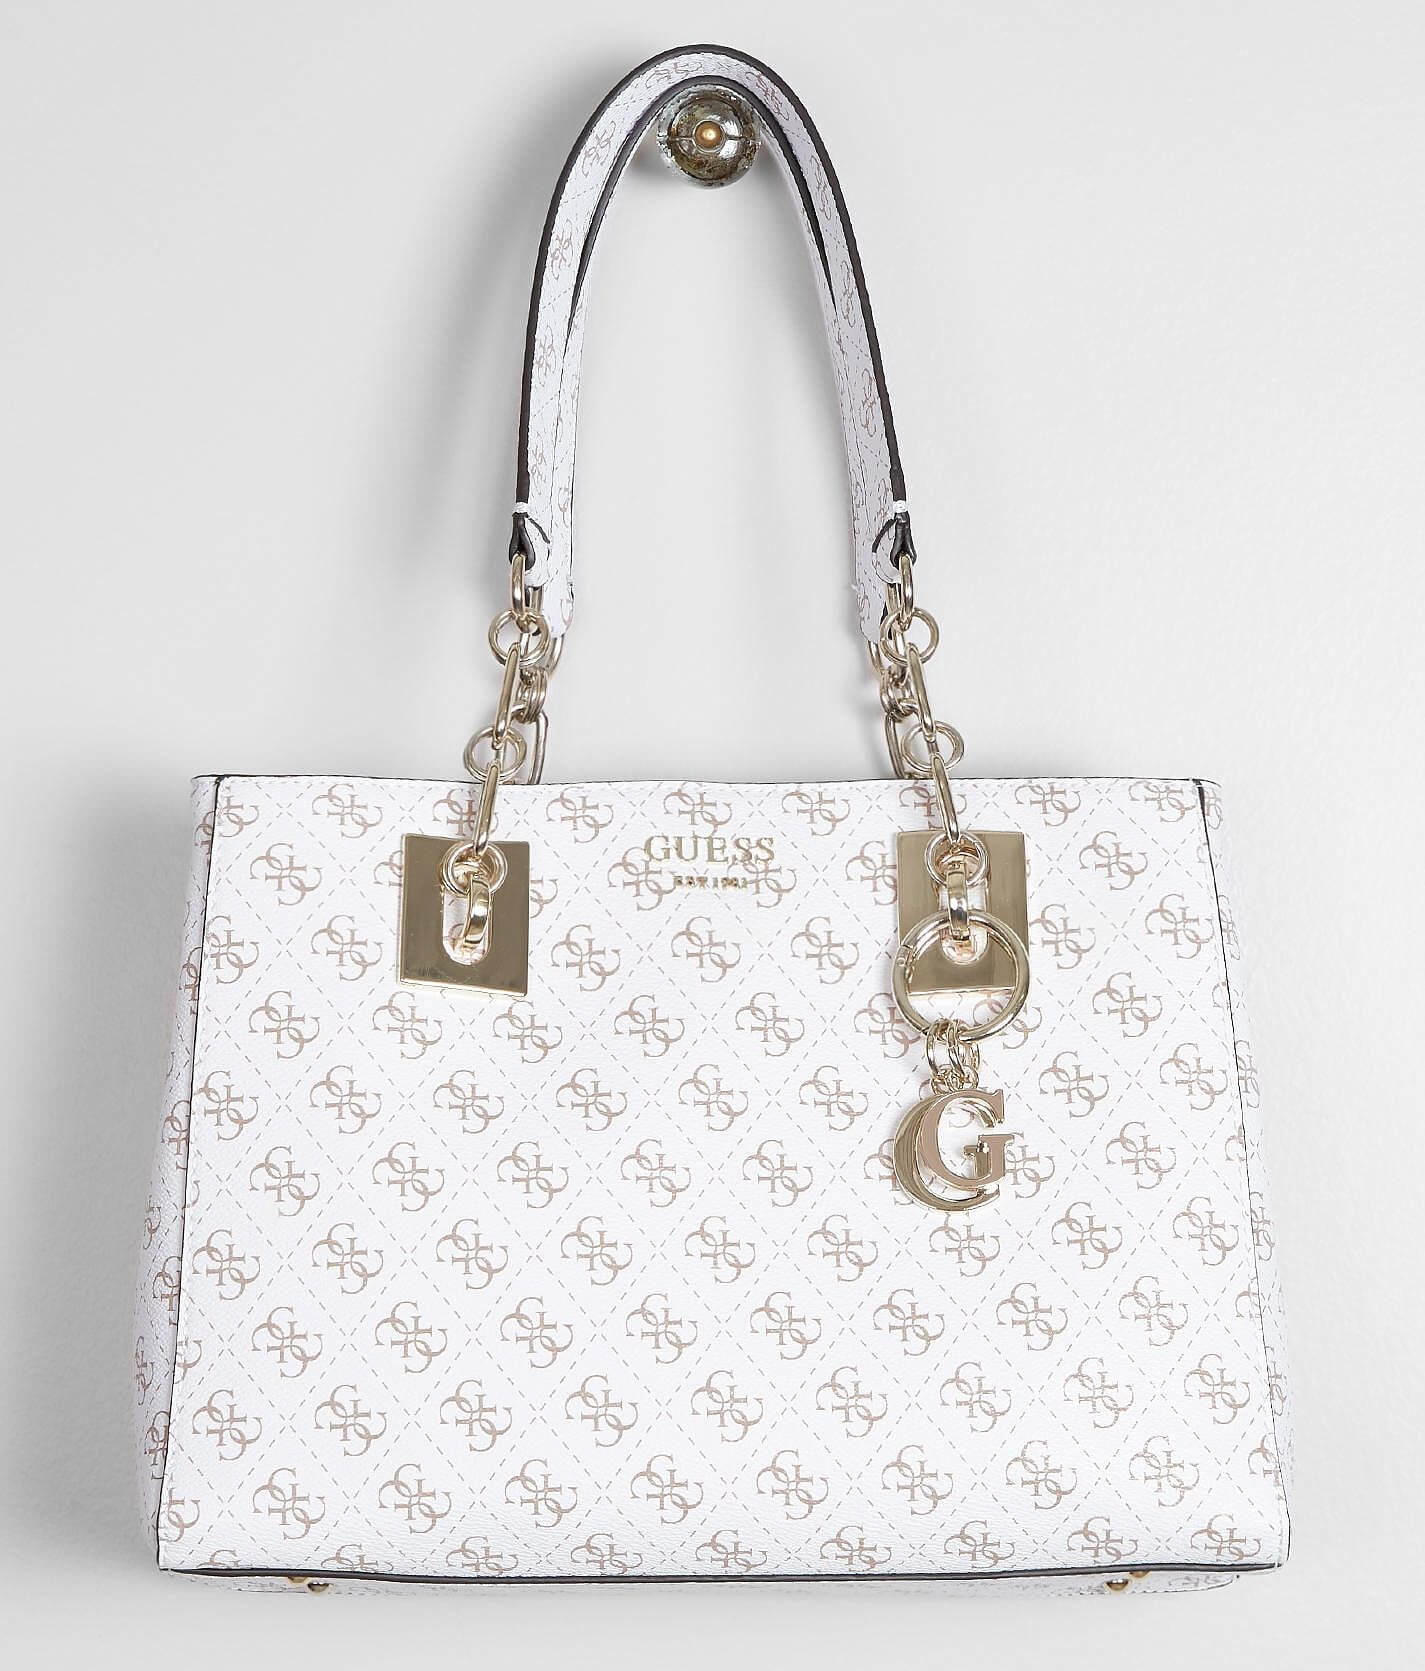 Bags for Women - Guess   Buckle